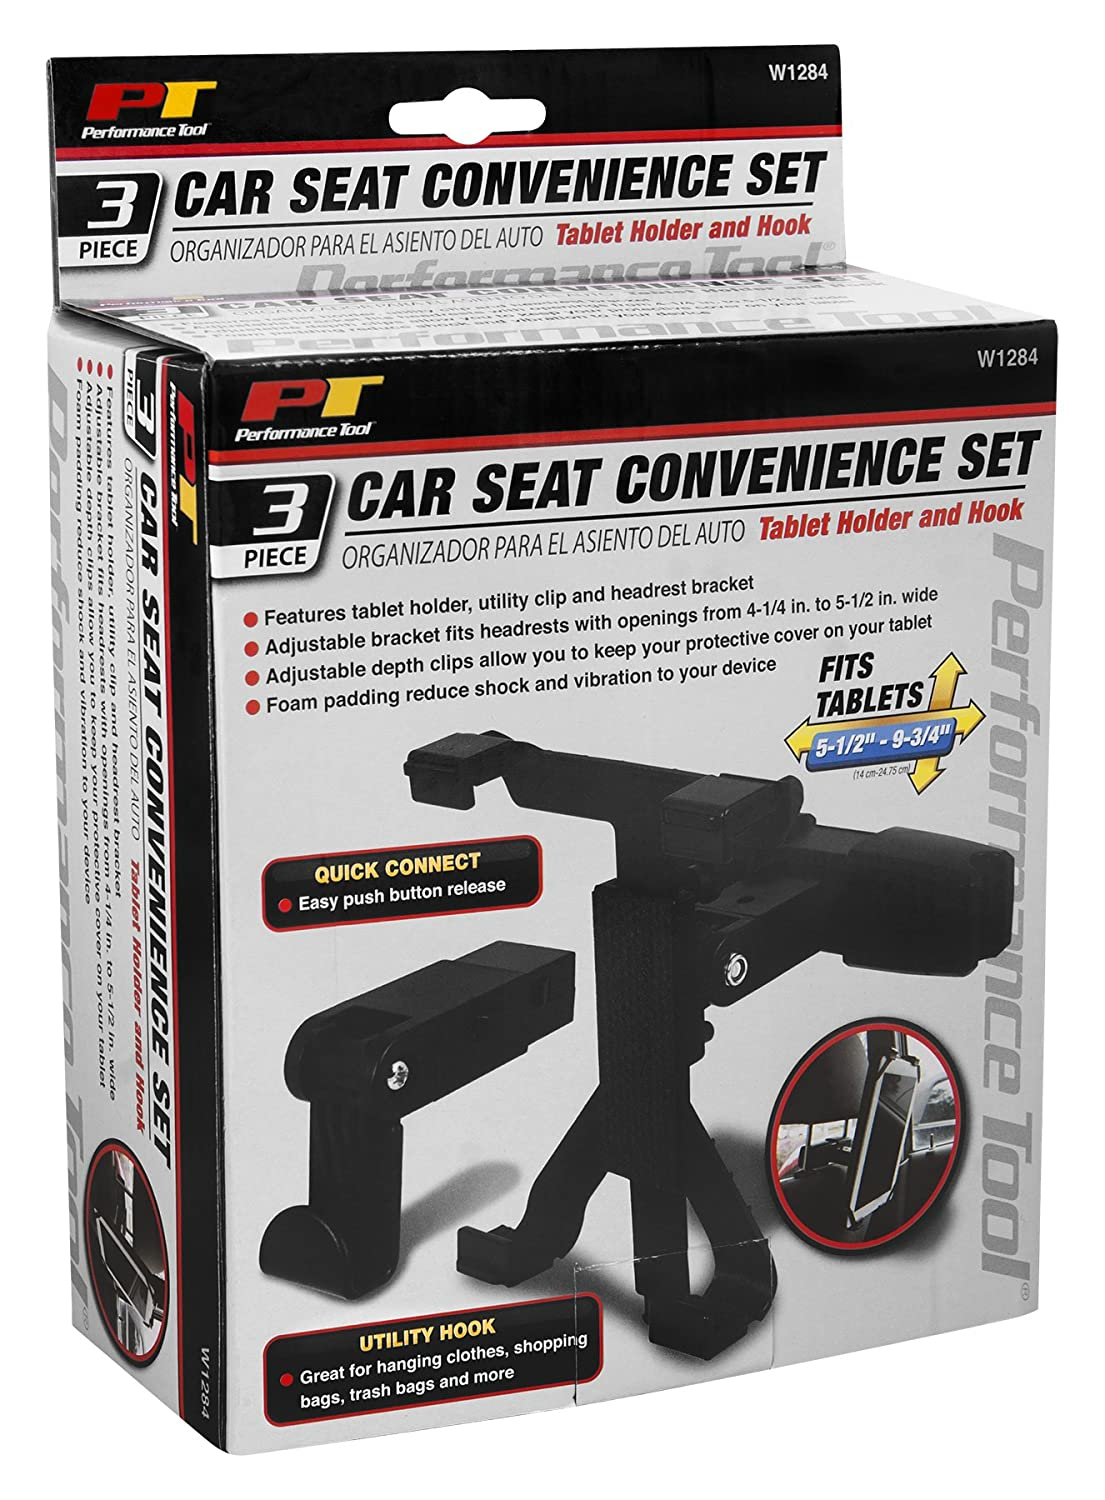 Performance Tool W1284 3pc Car Seat Convenience Set